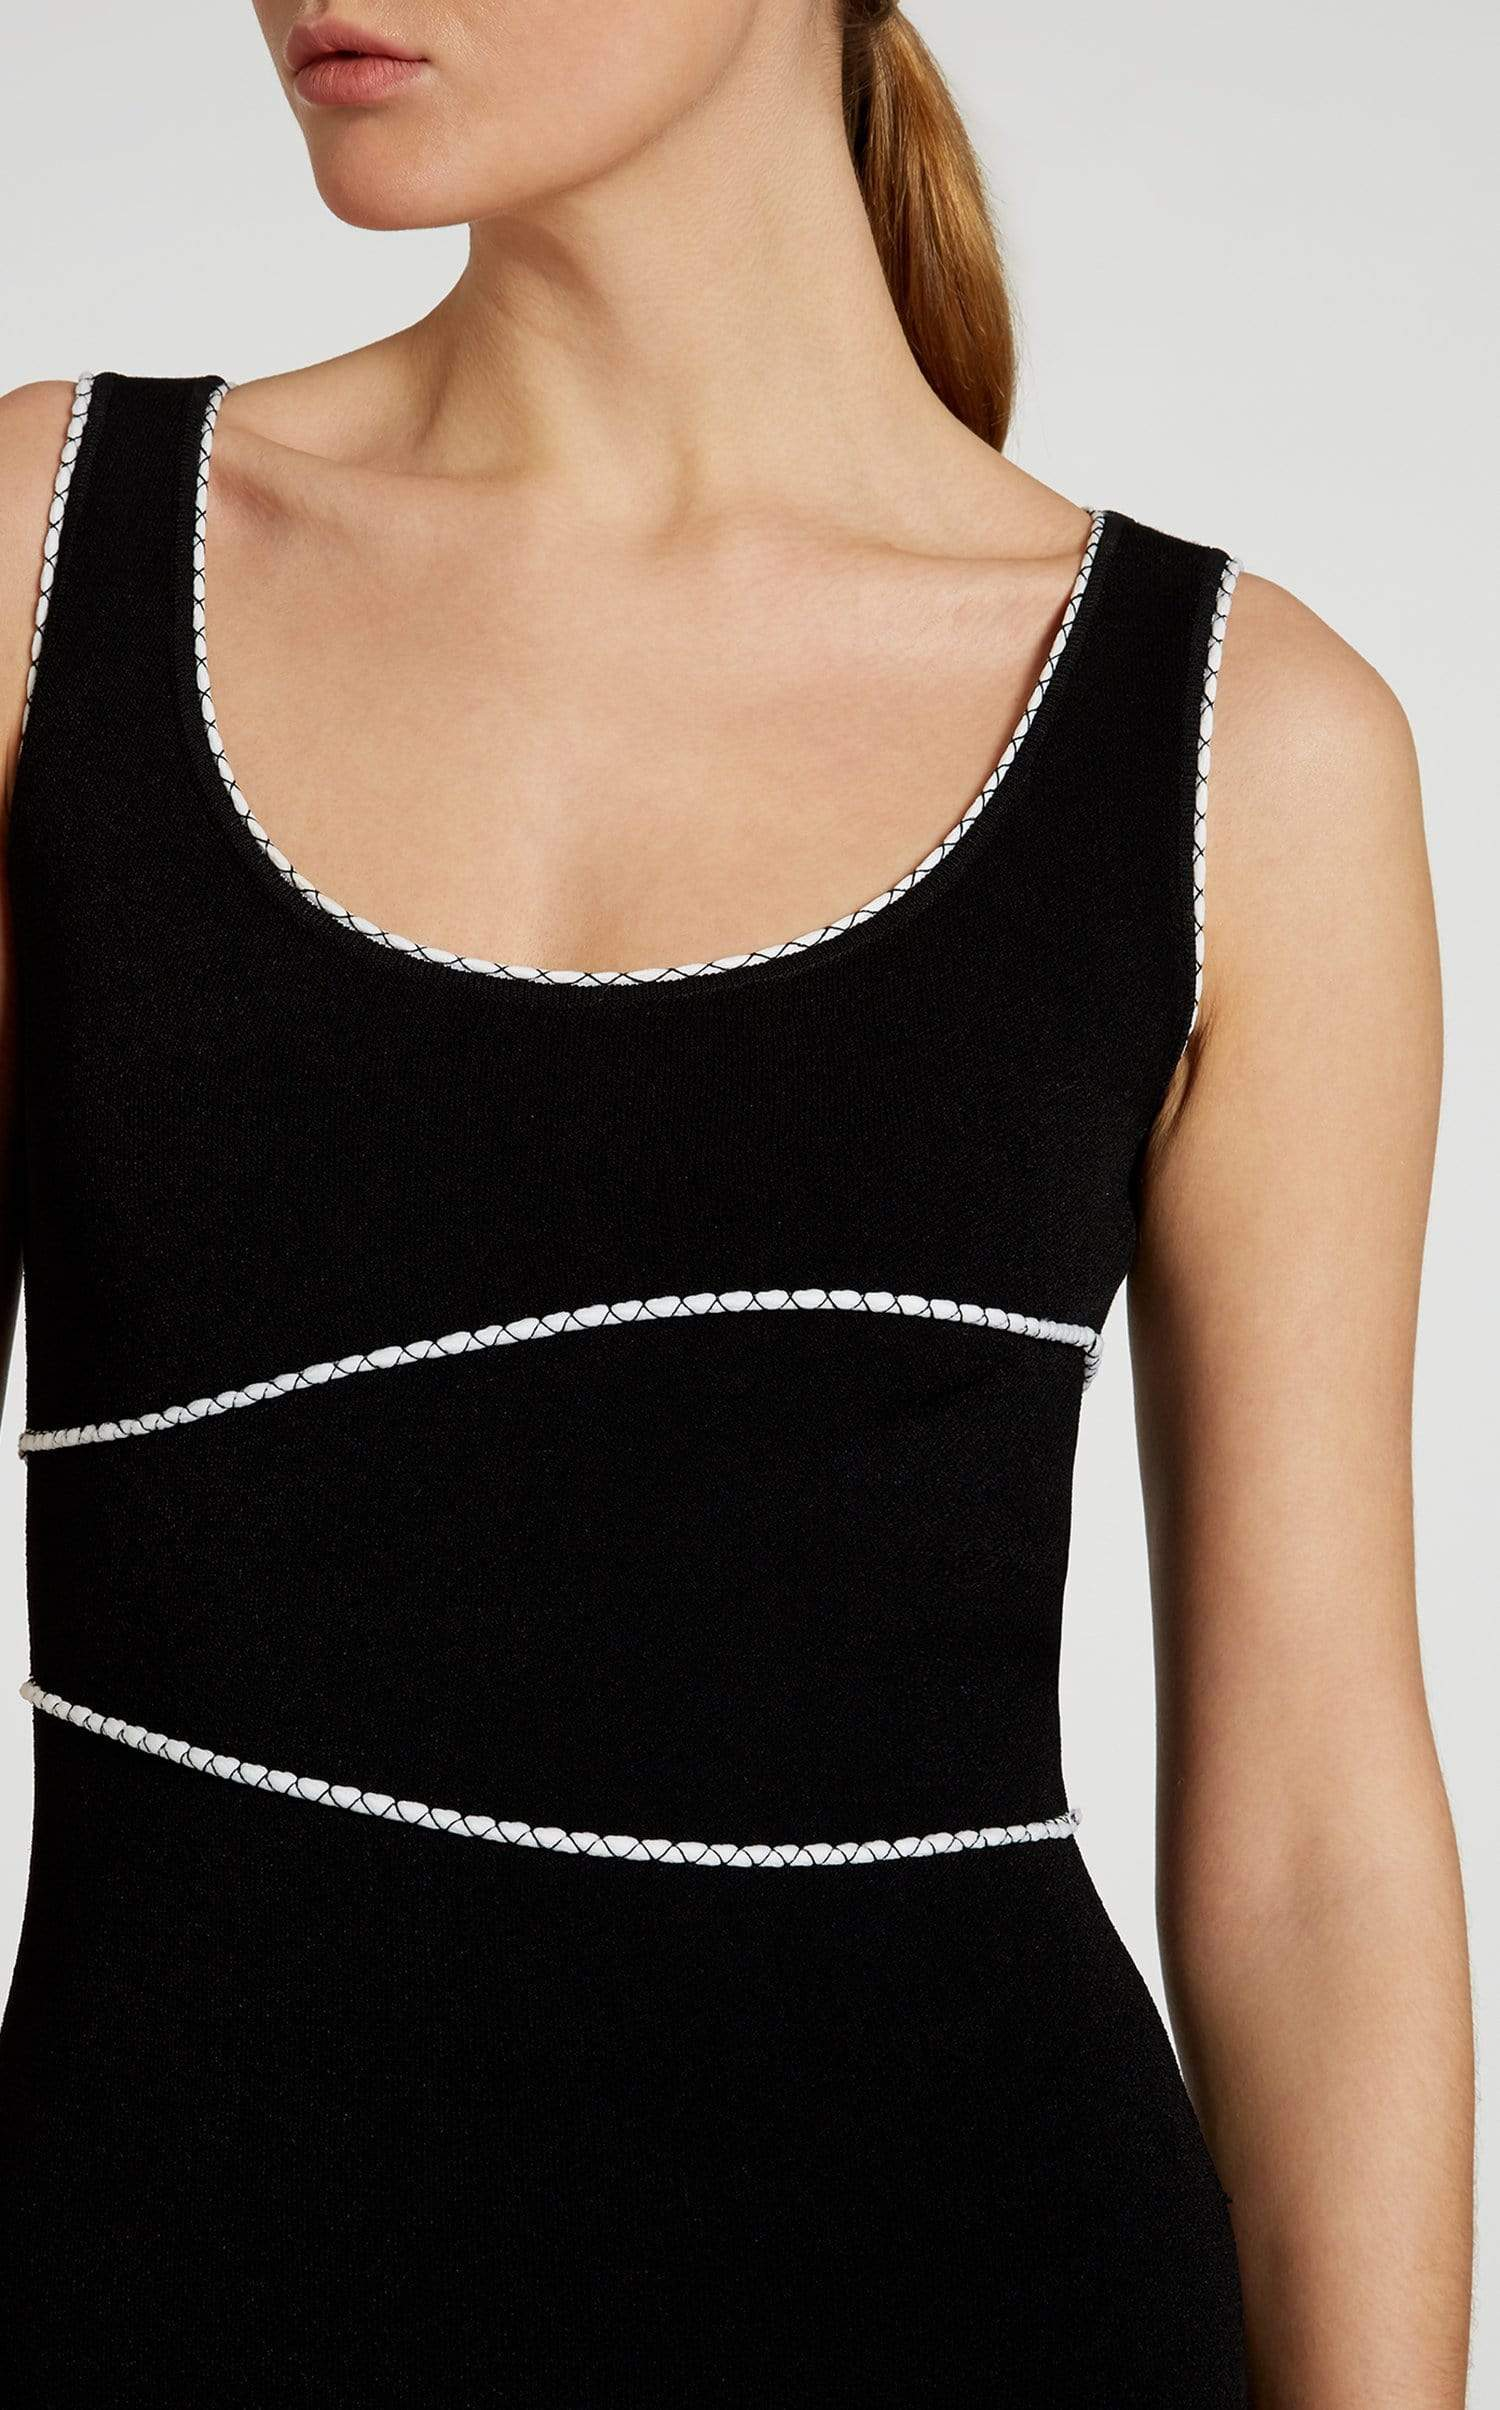 Harbour Dress In Black/White from Roland Mouret